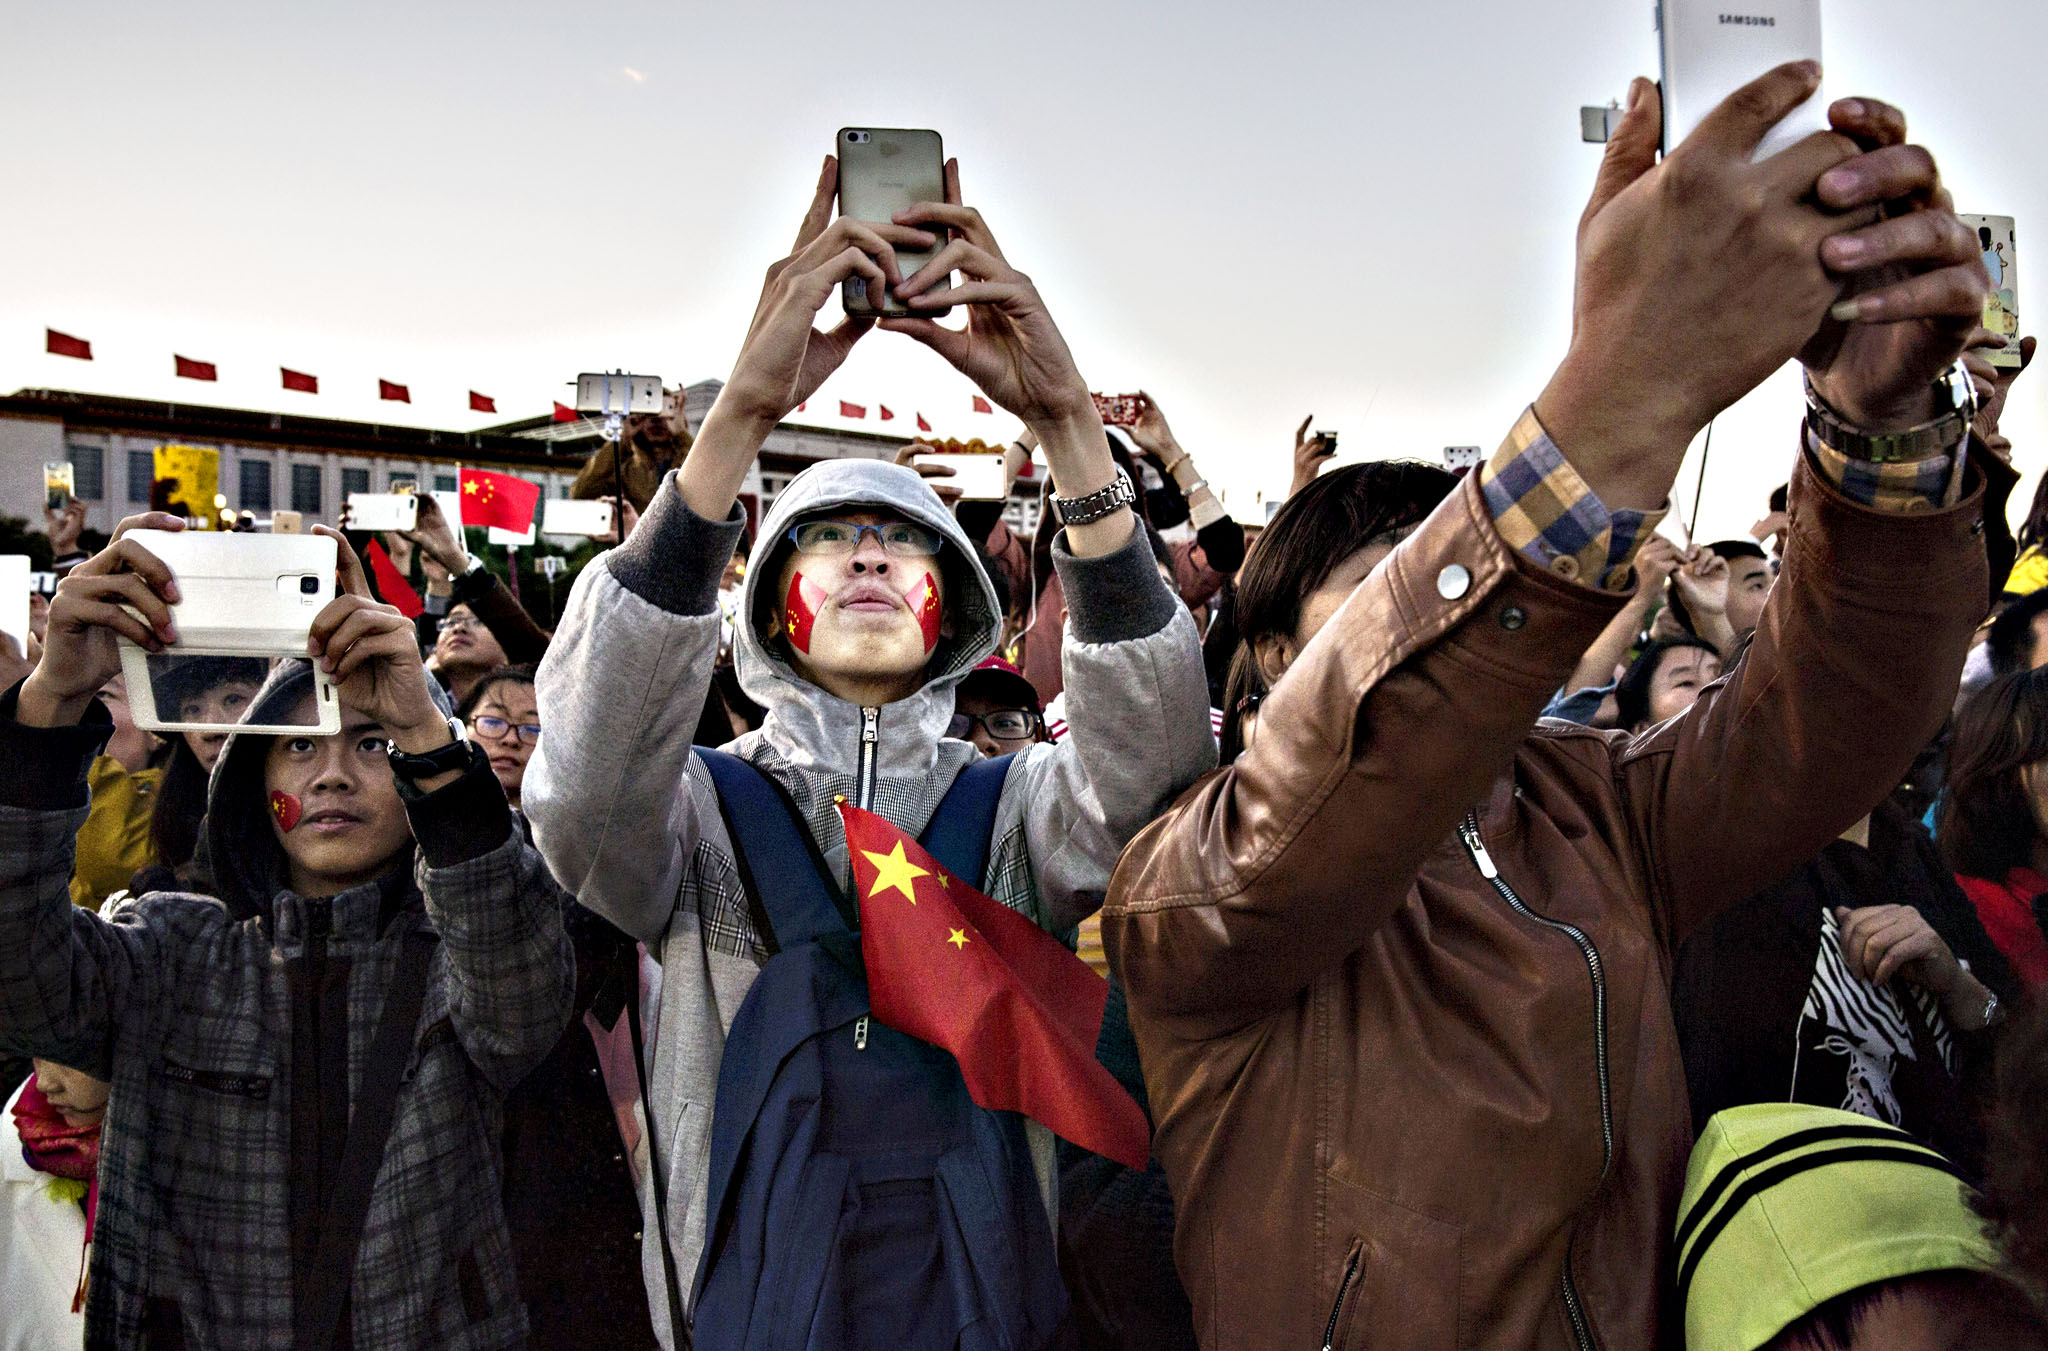 """People take pictures as they gather during the official flag raising ceremony at Tiananmen Square to mark the 66th National Day on October 1, 2015 in Beijing, China. China begins the """"Golden Week"""" holiday Thursday, as much of the country shuts down and financial markets close until October 8th"""